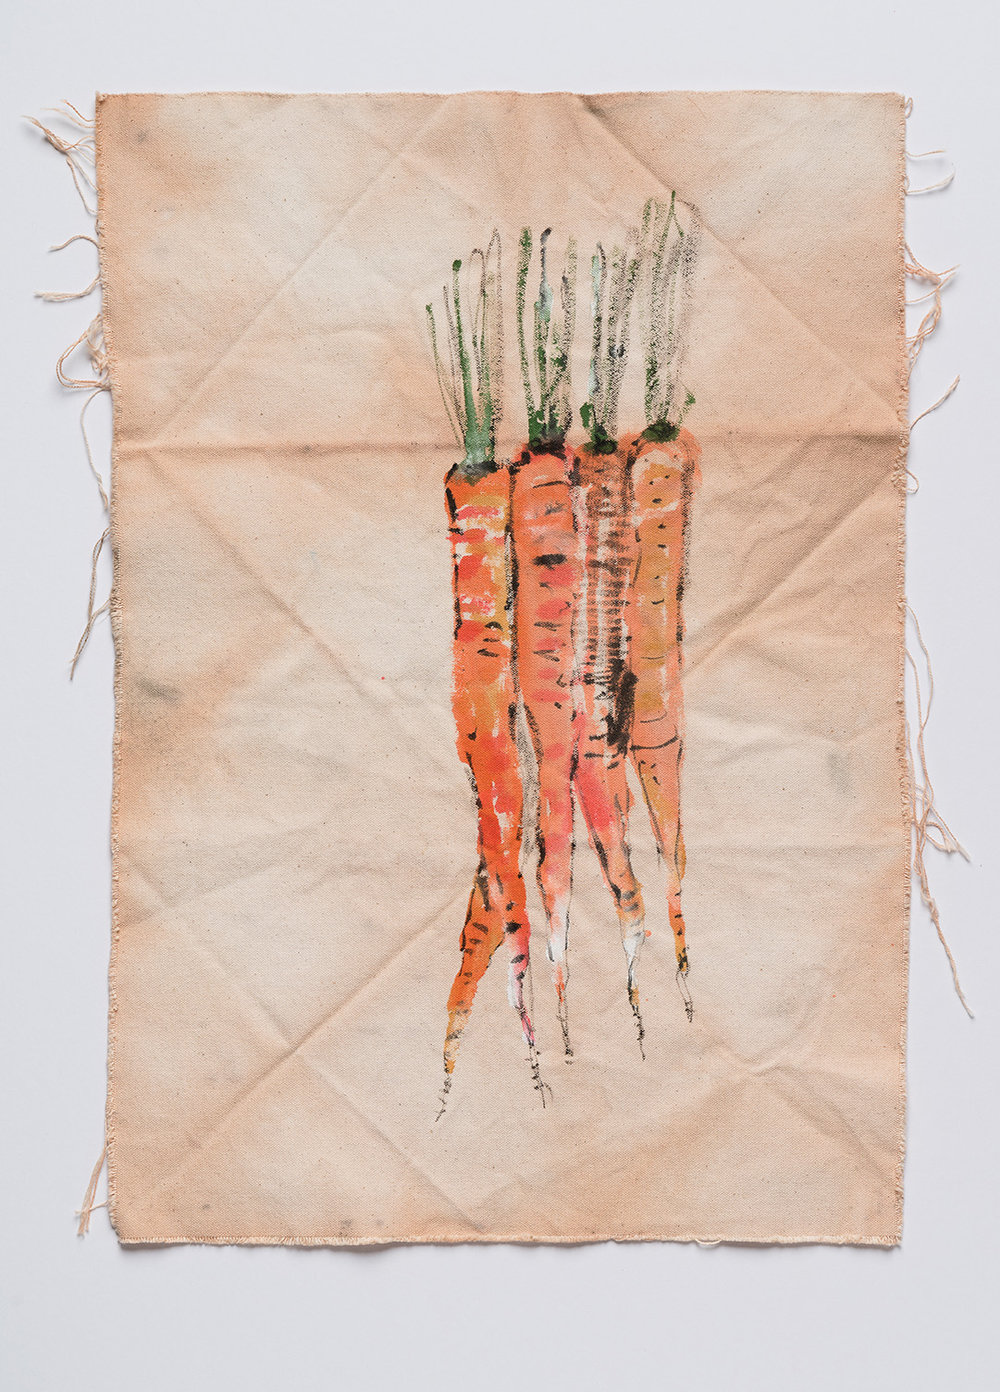 Homegrown , 2017  ink, pigment, and onion dye on canvas